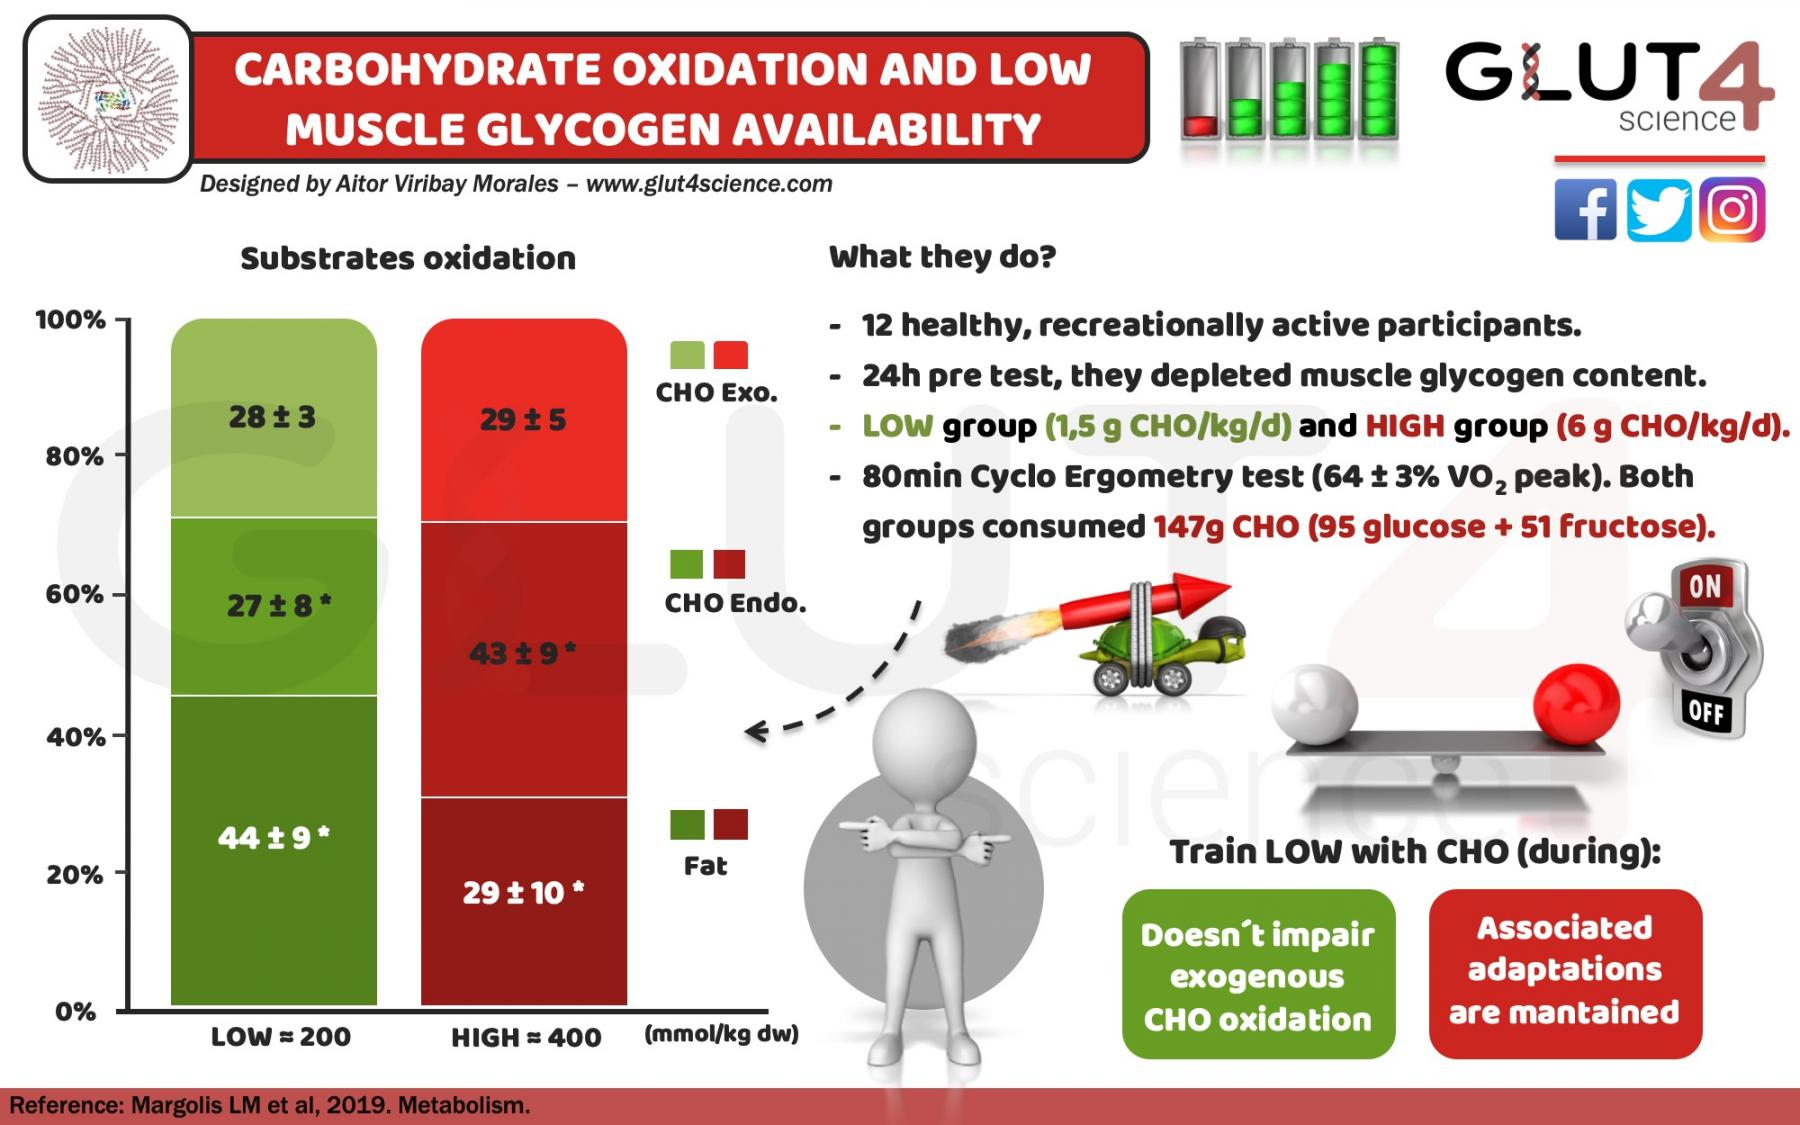 CHO oxidation during Low Carb training